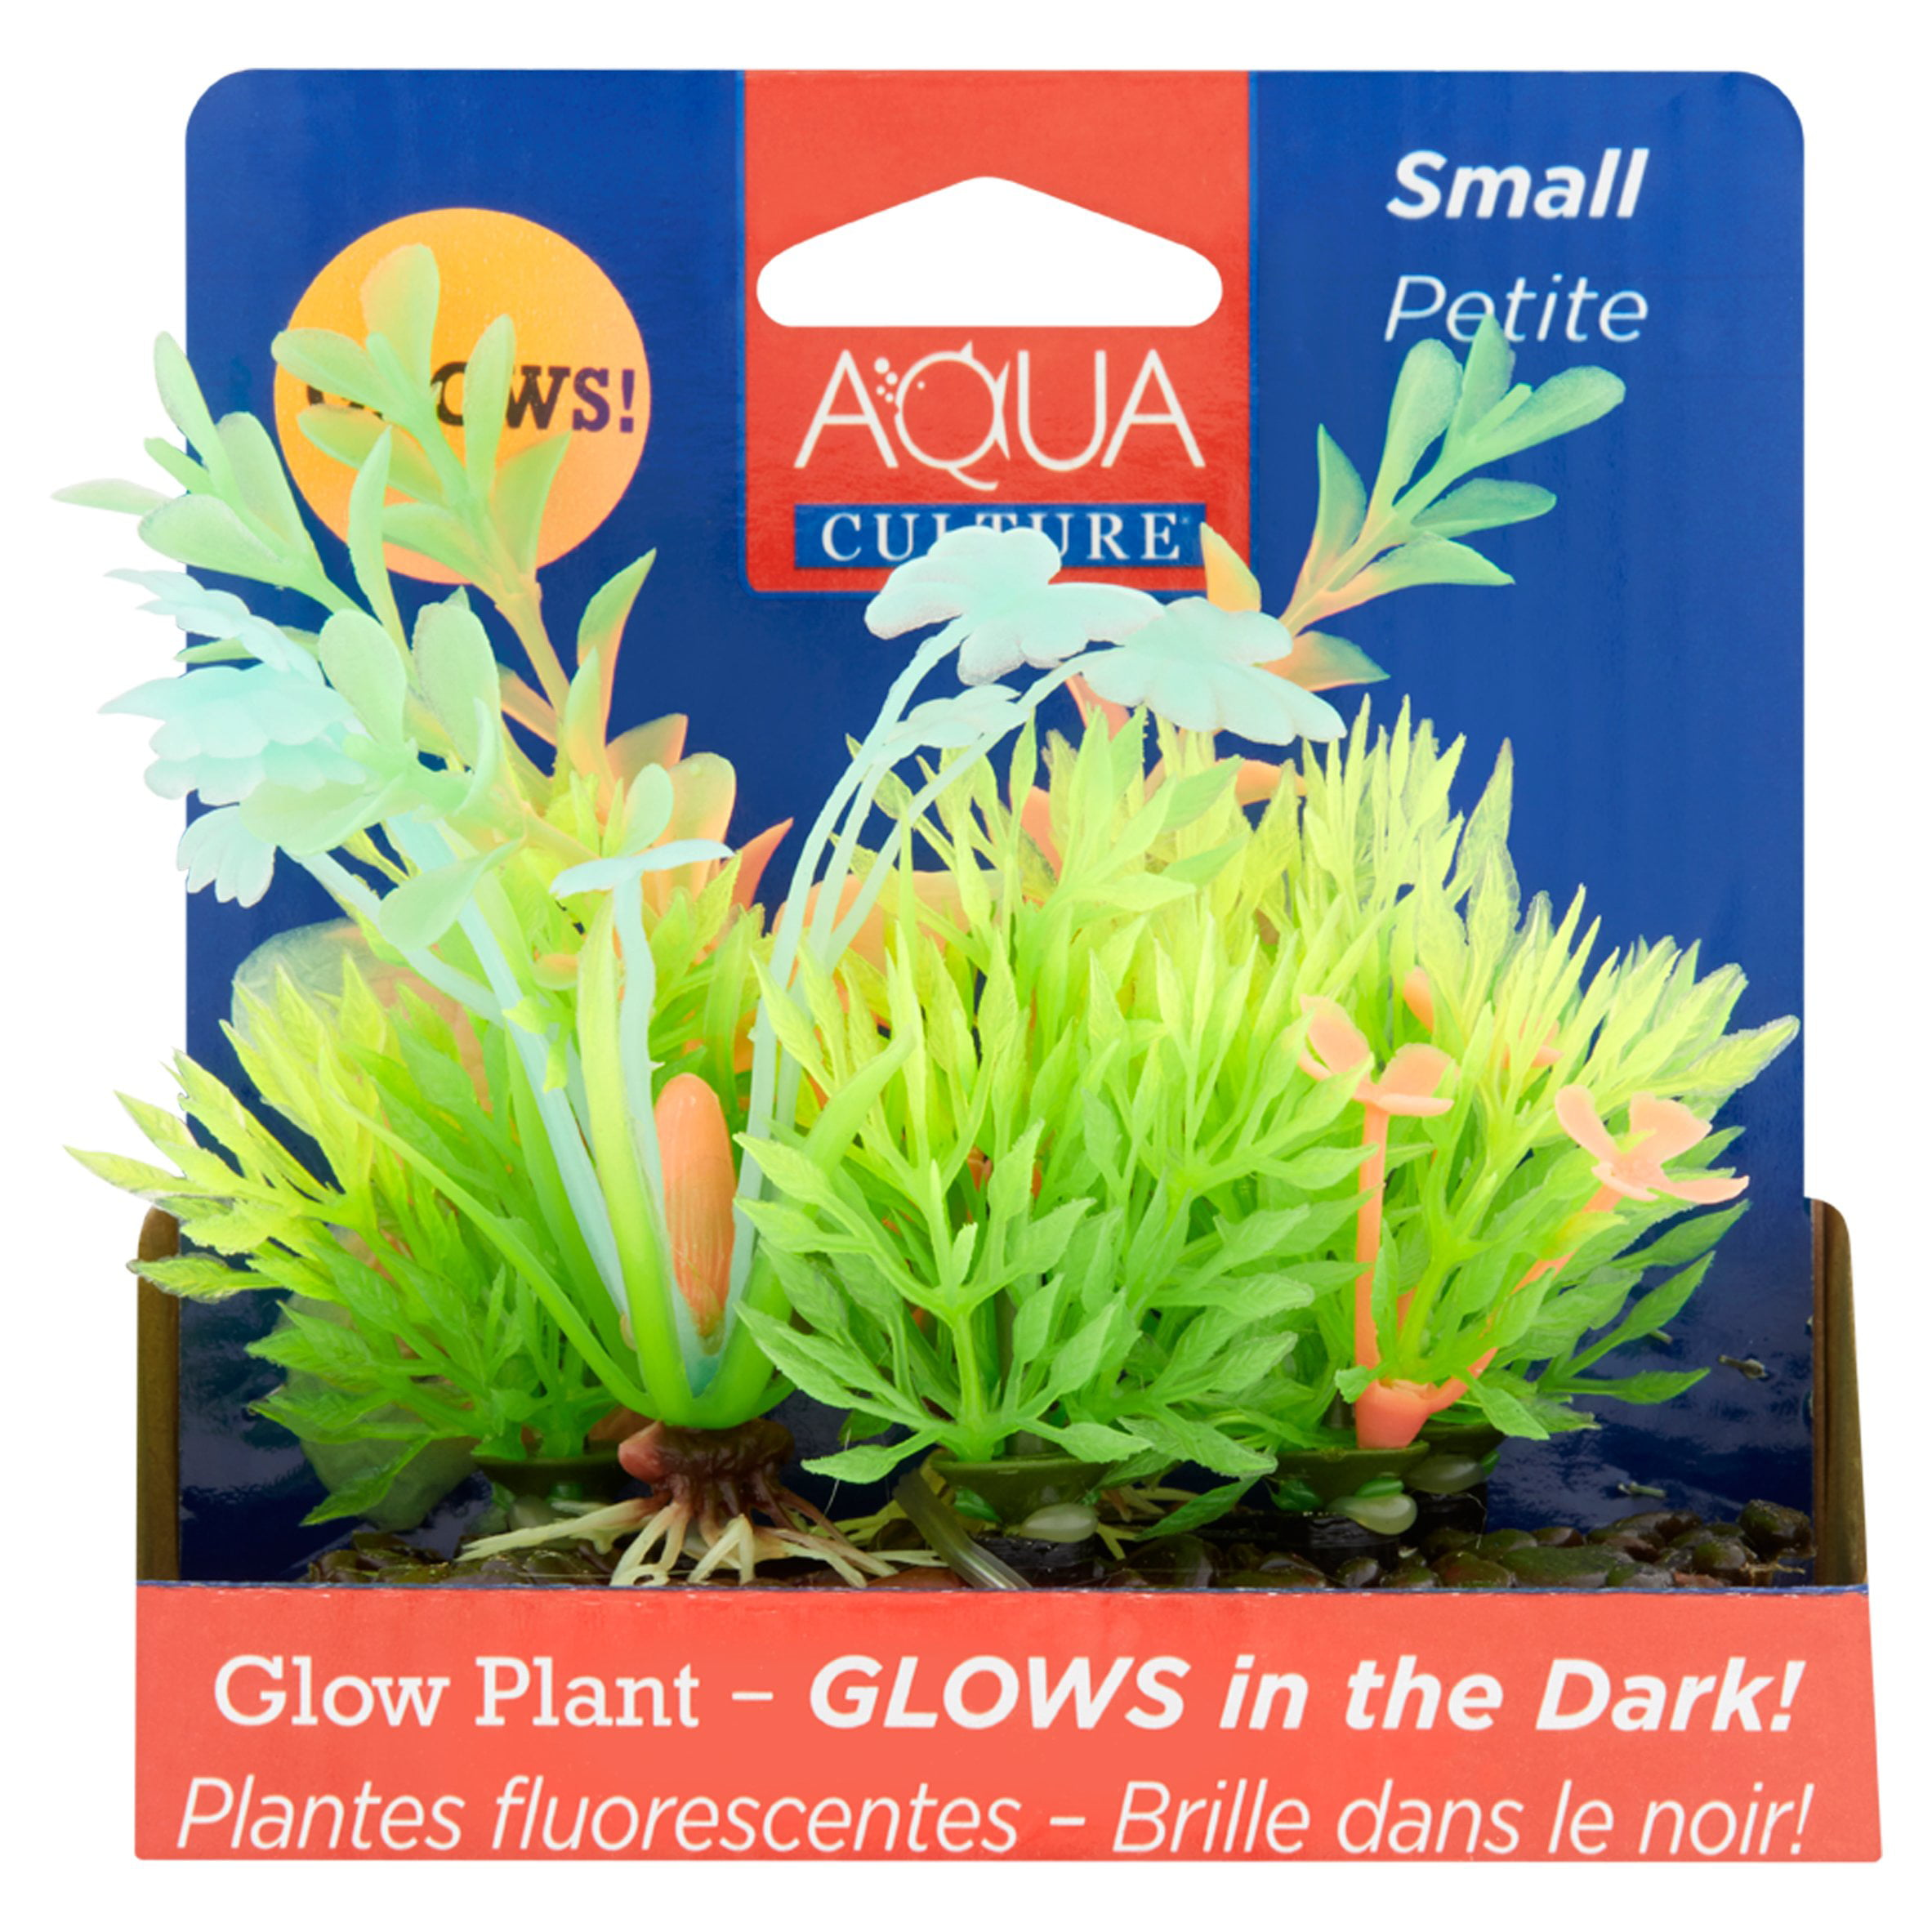 Aqua Culture Small Aquarium Plant Decoration, Small, Glow in the Dark by Wal-Mart Stores, Inc.